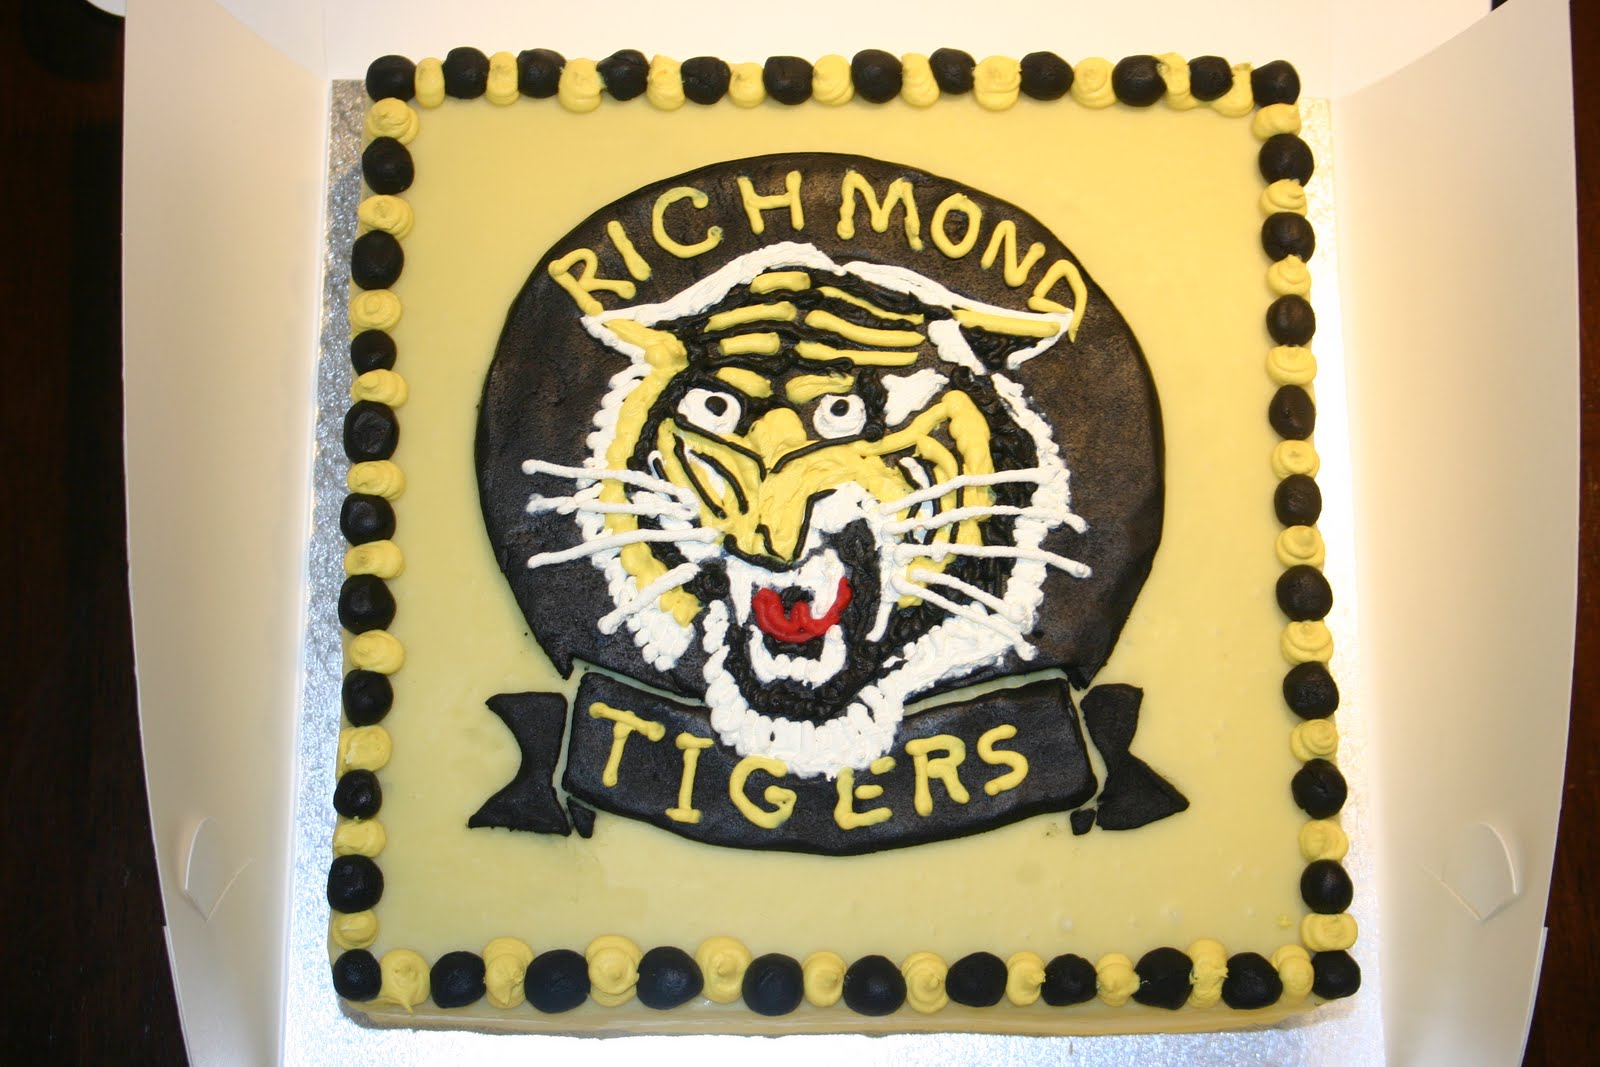 Richmond Tigers Cake